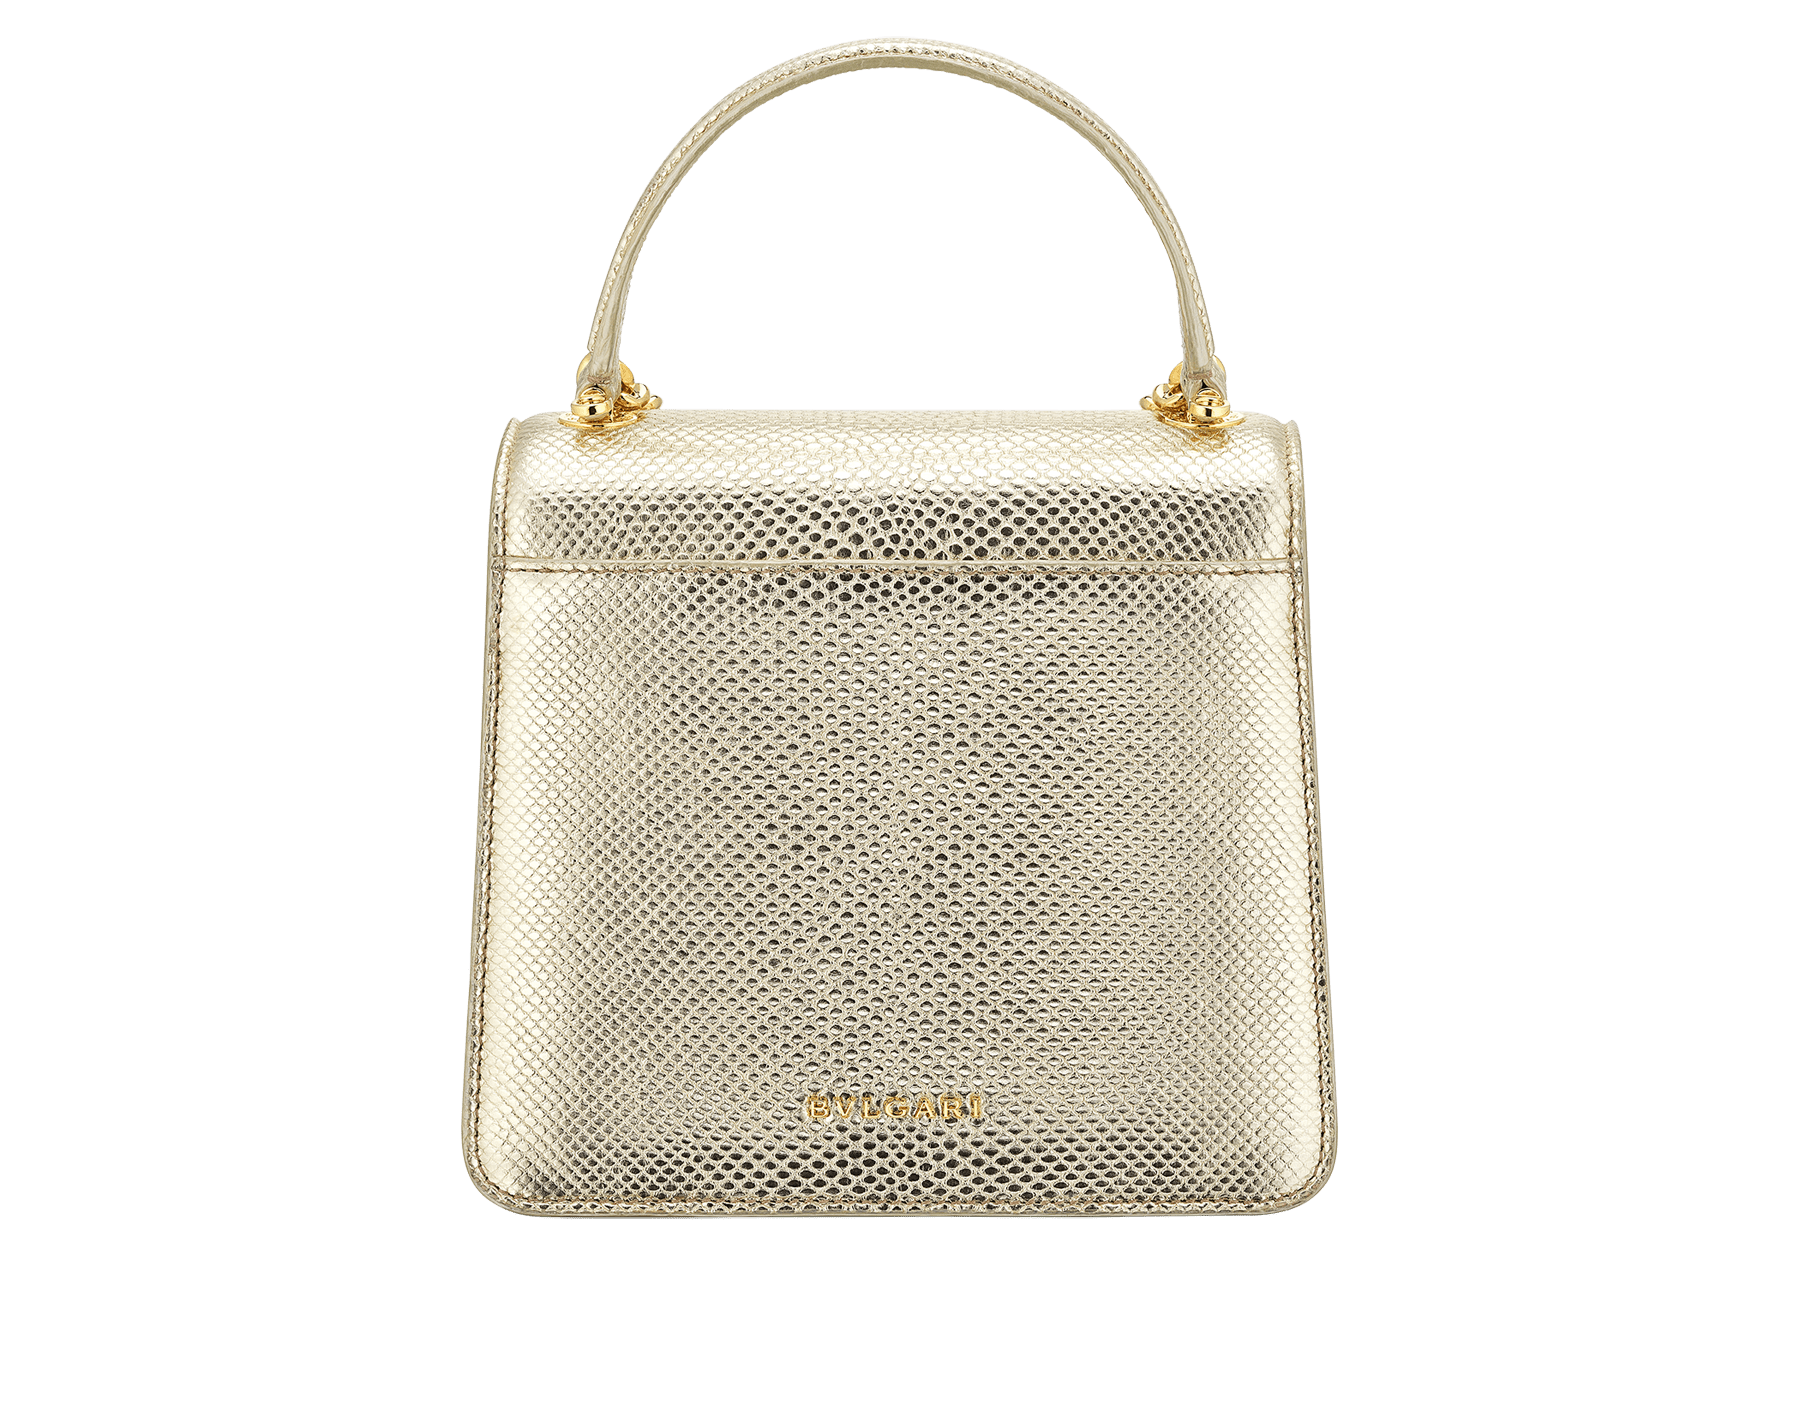 """Serpenti Forever"" small maxi chain top handle bag in peach nappa leather, with Lavander Amethyst lilac nappa leather internal lining. New Serpenti head closure in gold plated brass, finished with small pink mother-of-pearl scales in the middle and red enamel eyes. 1133-MCN image 3"